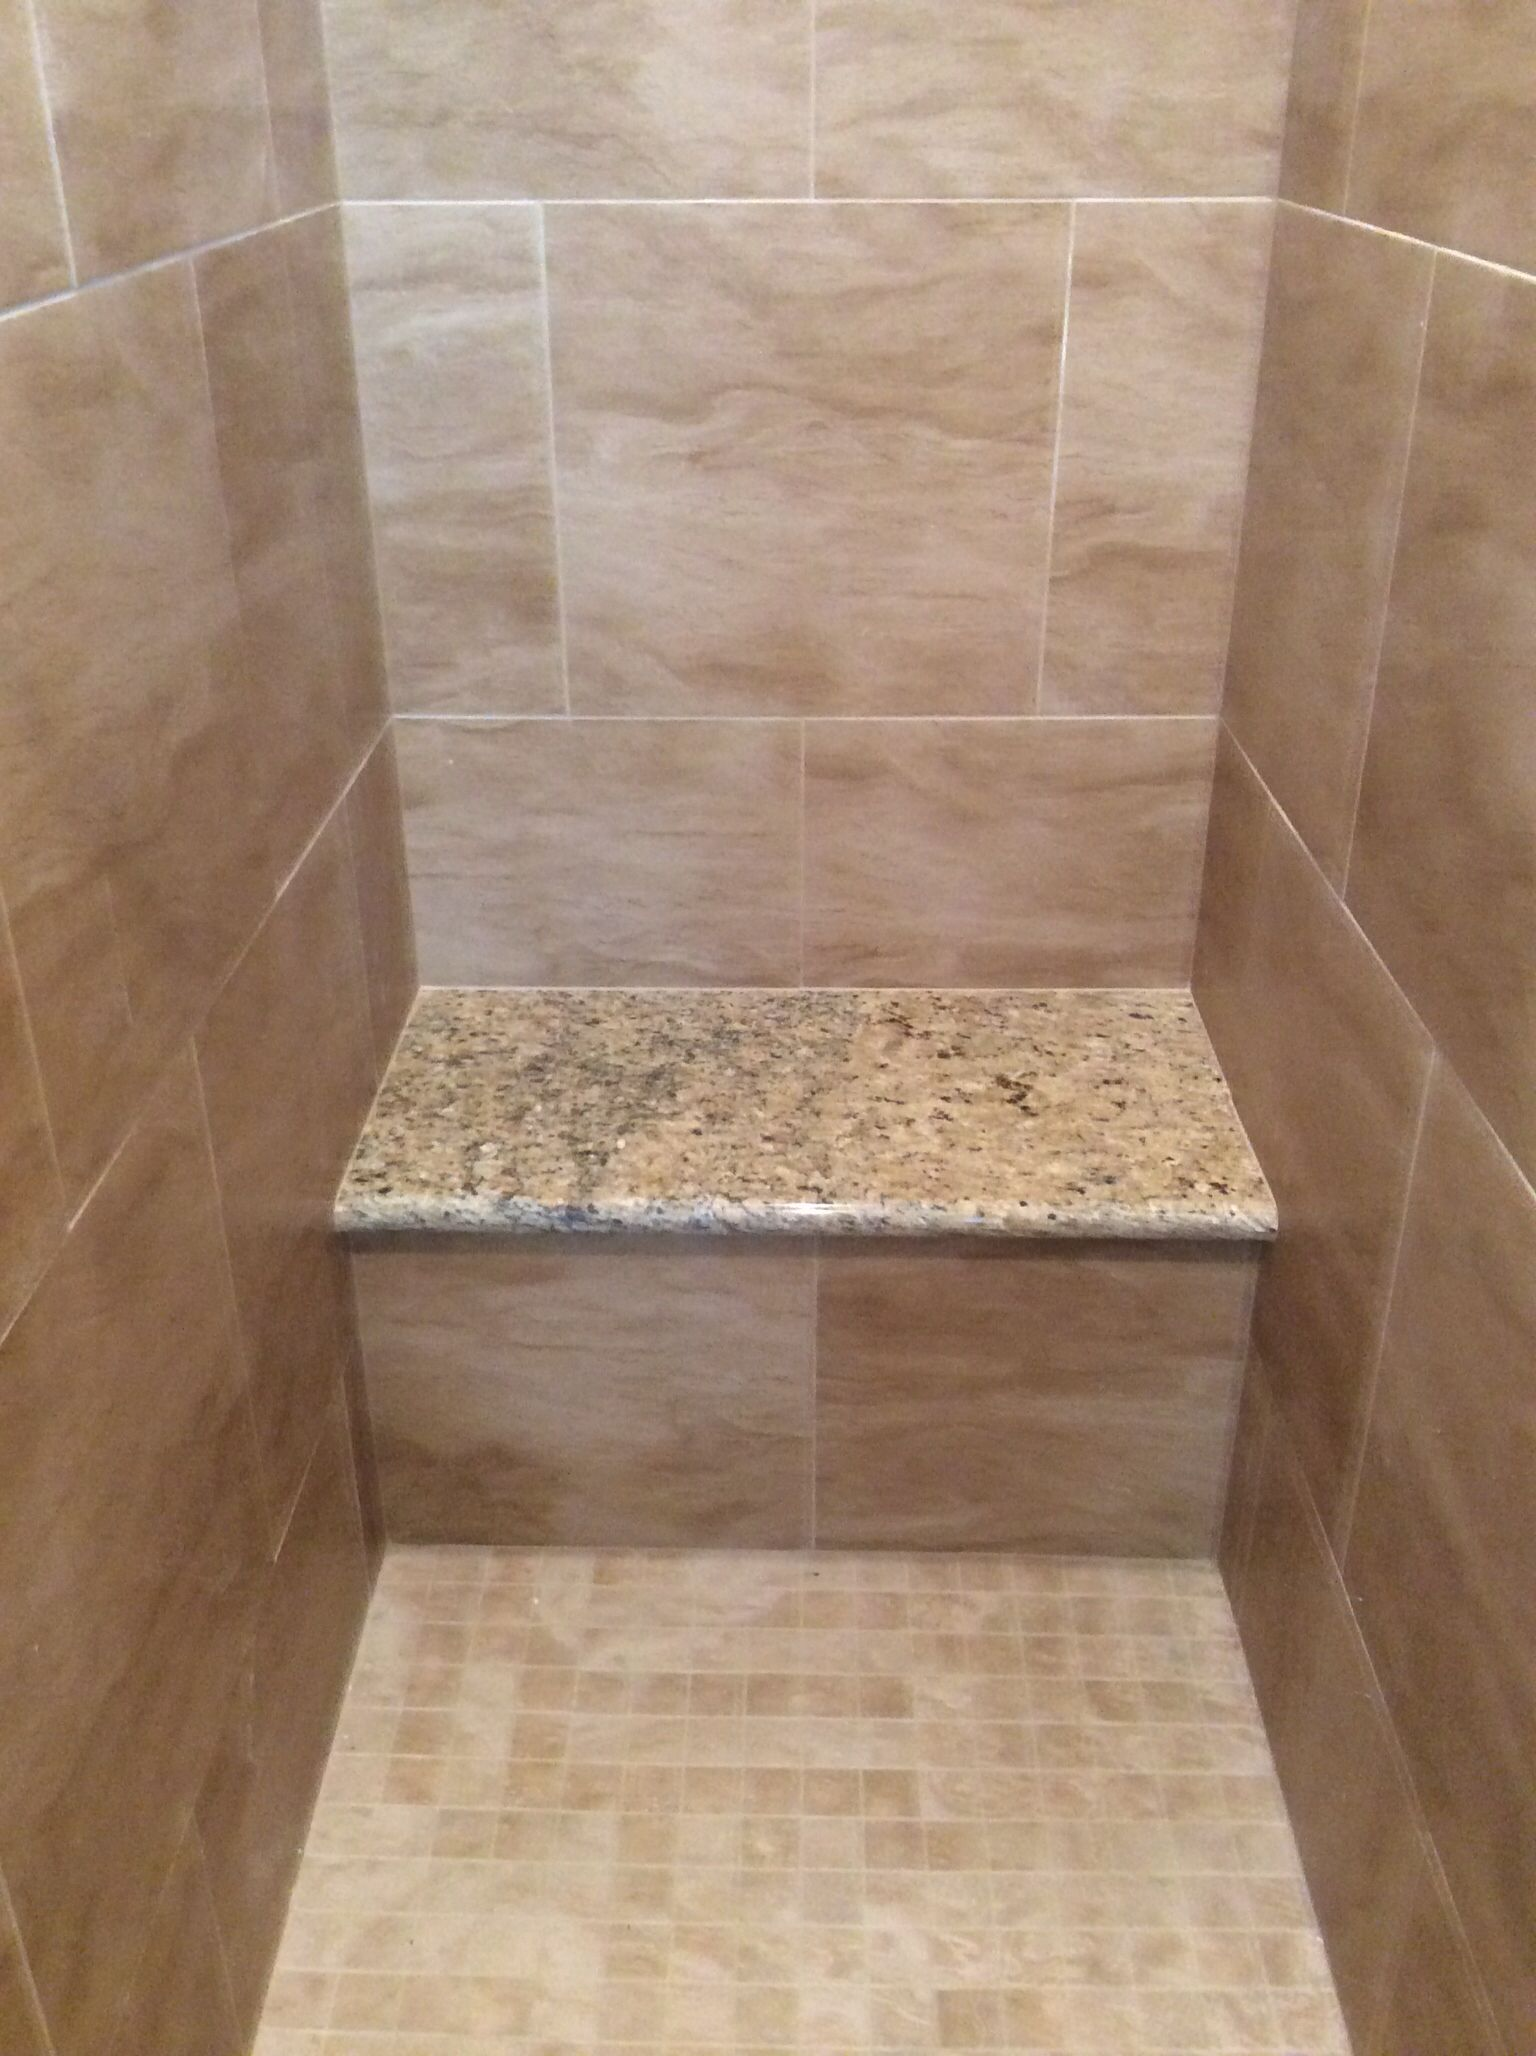 Bench in shower stall (cement bench, no wood and granite top ...